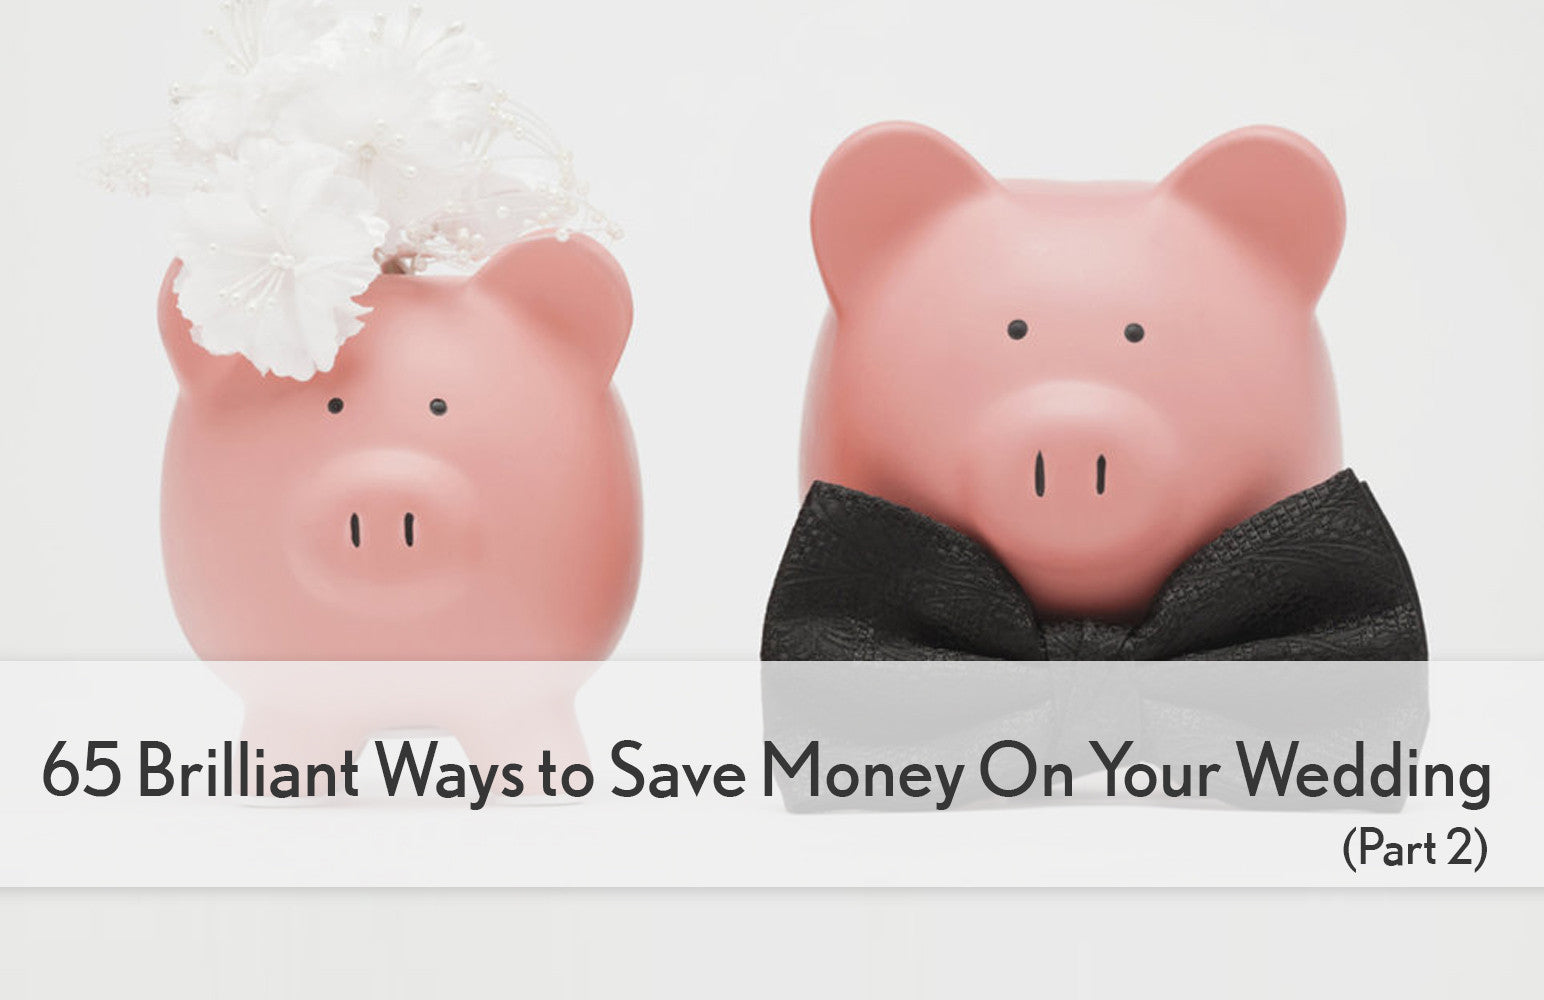 65 Brilliant and Ingenious Ways to Save Money and Cut Wedding Costs (Part 2)